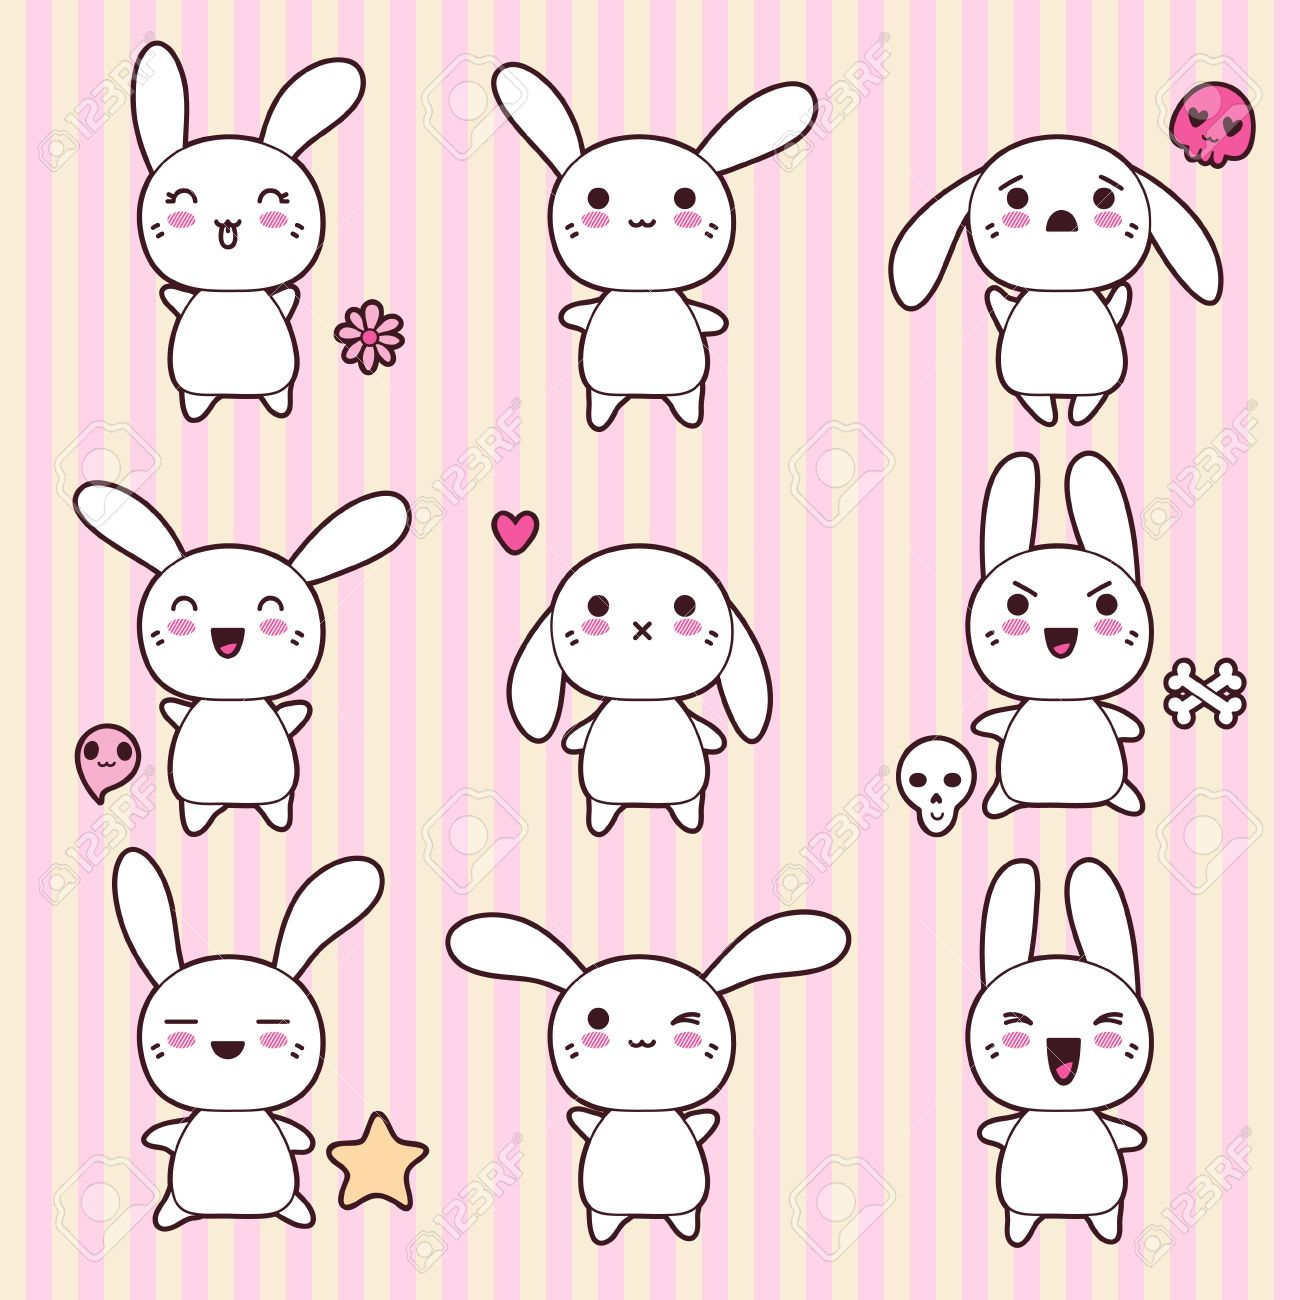 Cute Anime Rabbit Collection of funny and cute